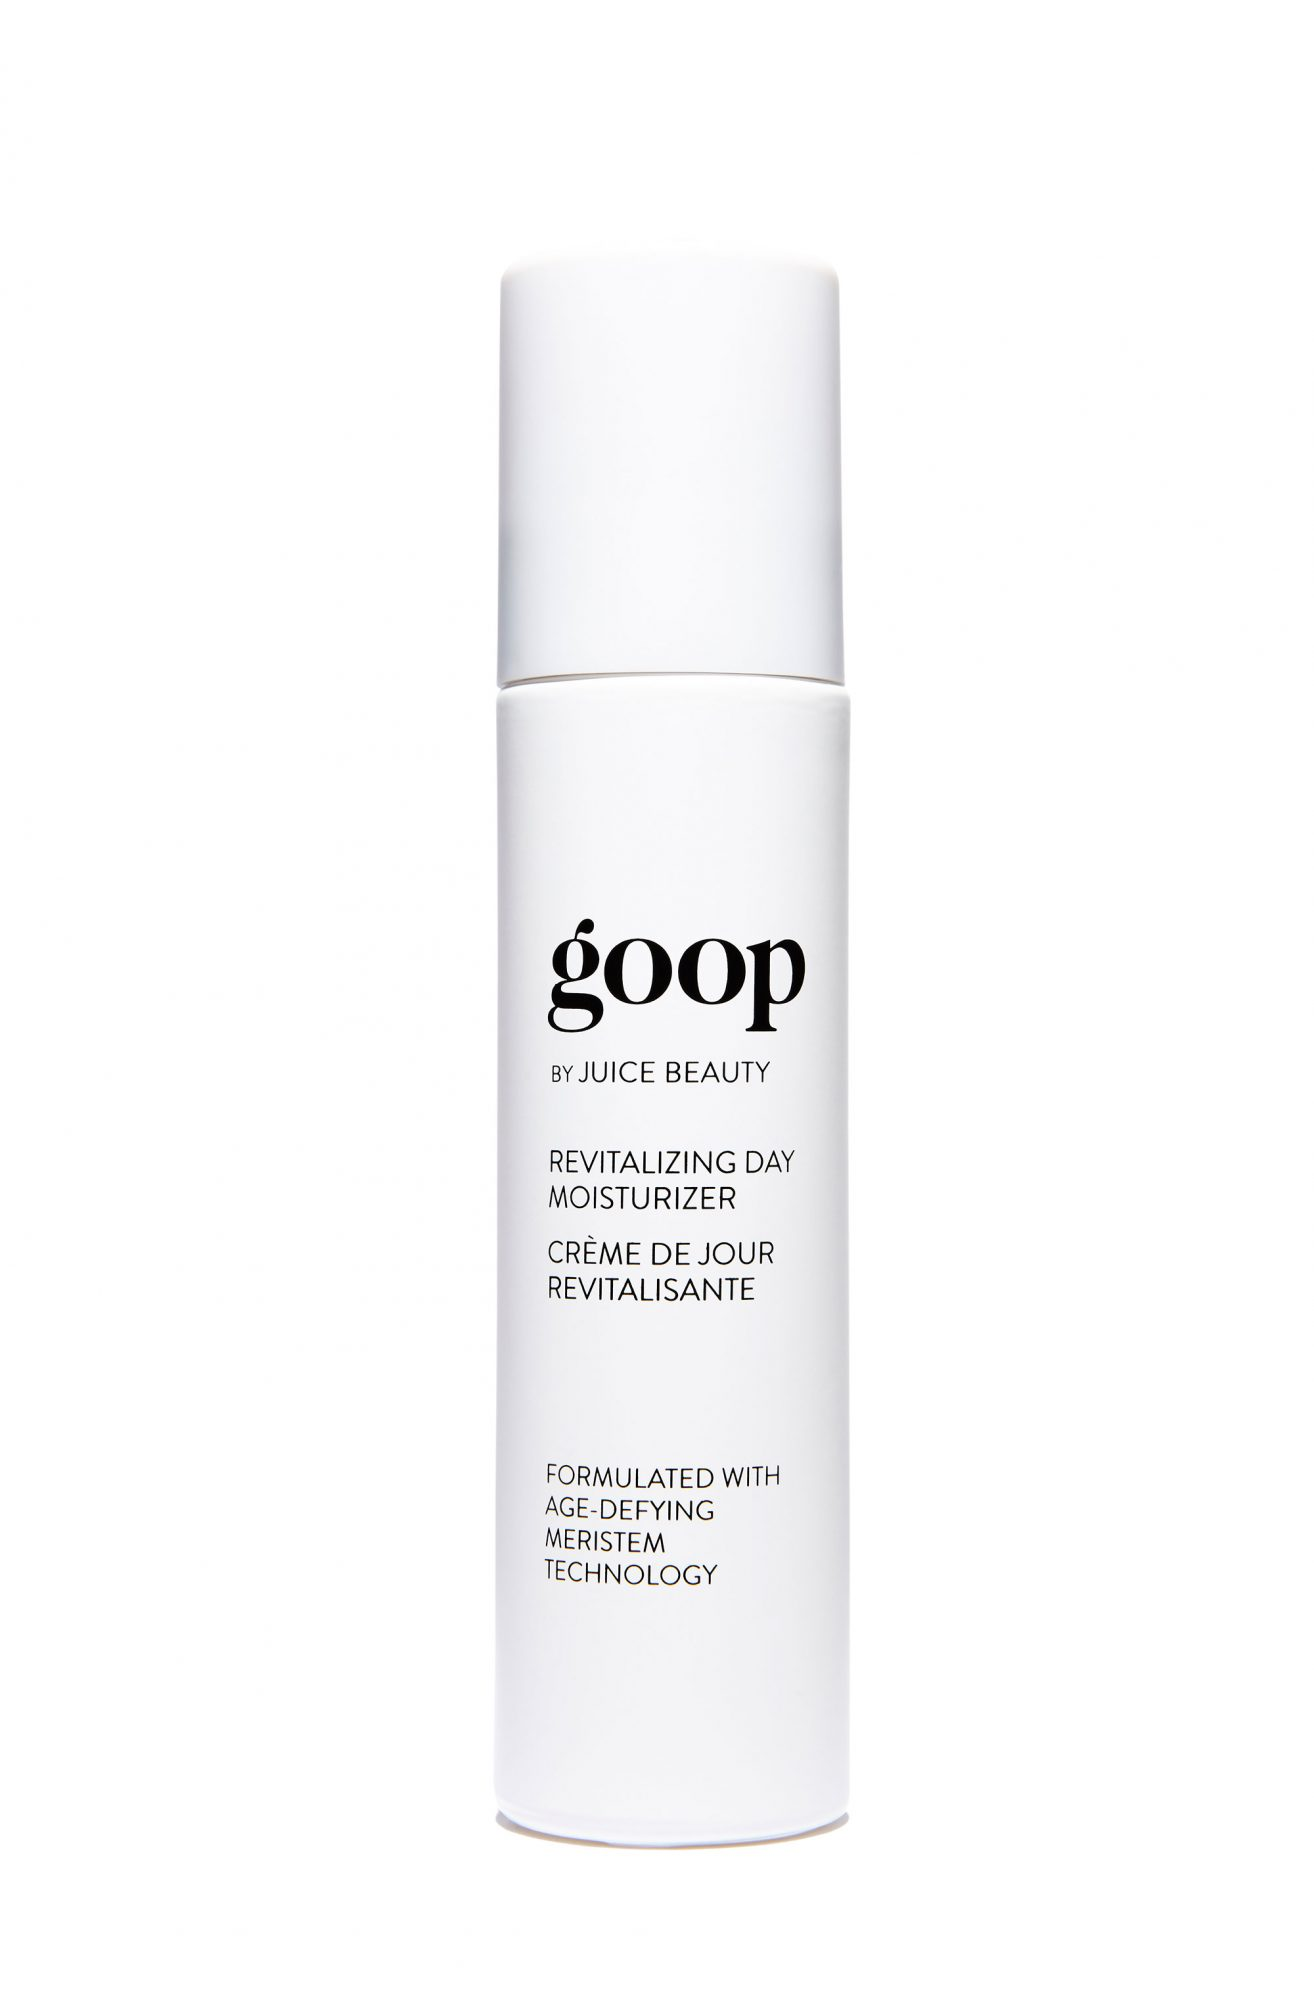 Revitalizing Day Moisturizer